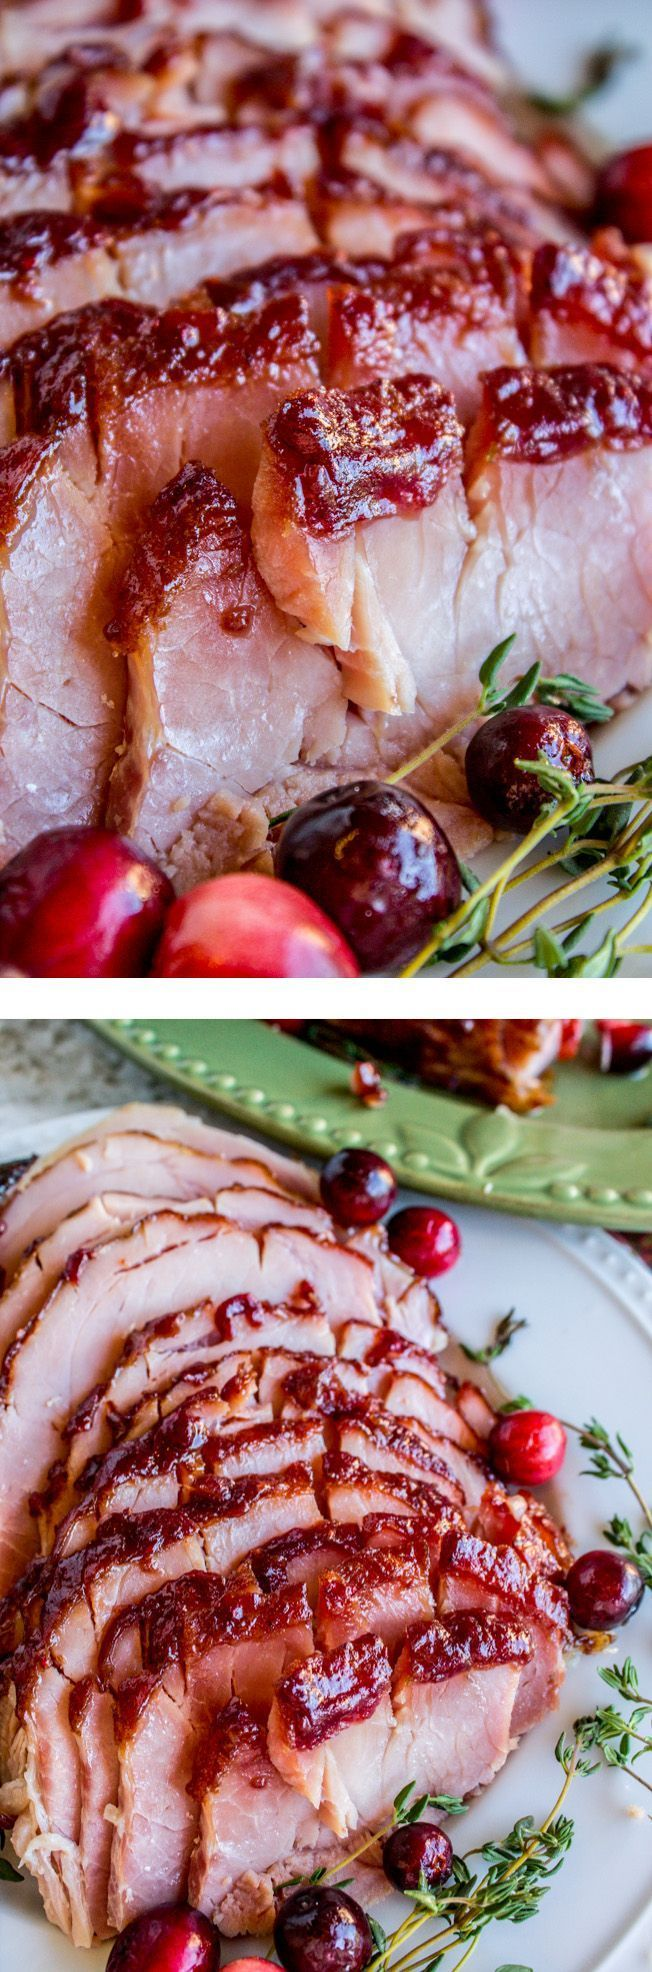 Oven roasted Cranberry Dijon Glazed Ham from The Food Charlatan. Ain't nothin better than an oven-roasted glazed ham I say! This recipe uses fresh cranberries, meaning it's perfect for the holiday season! I love the zing that the dijon mustard adds too. I